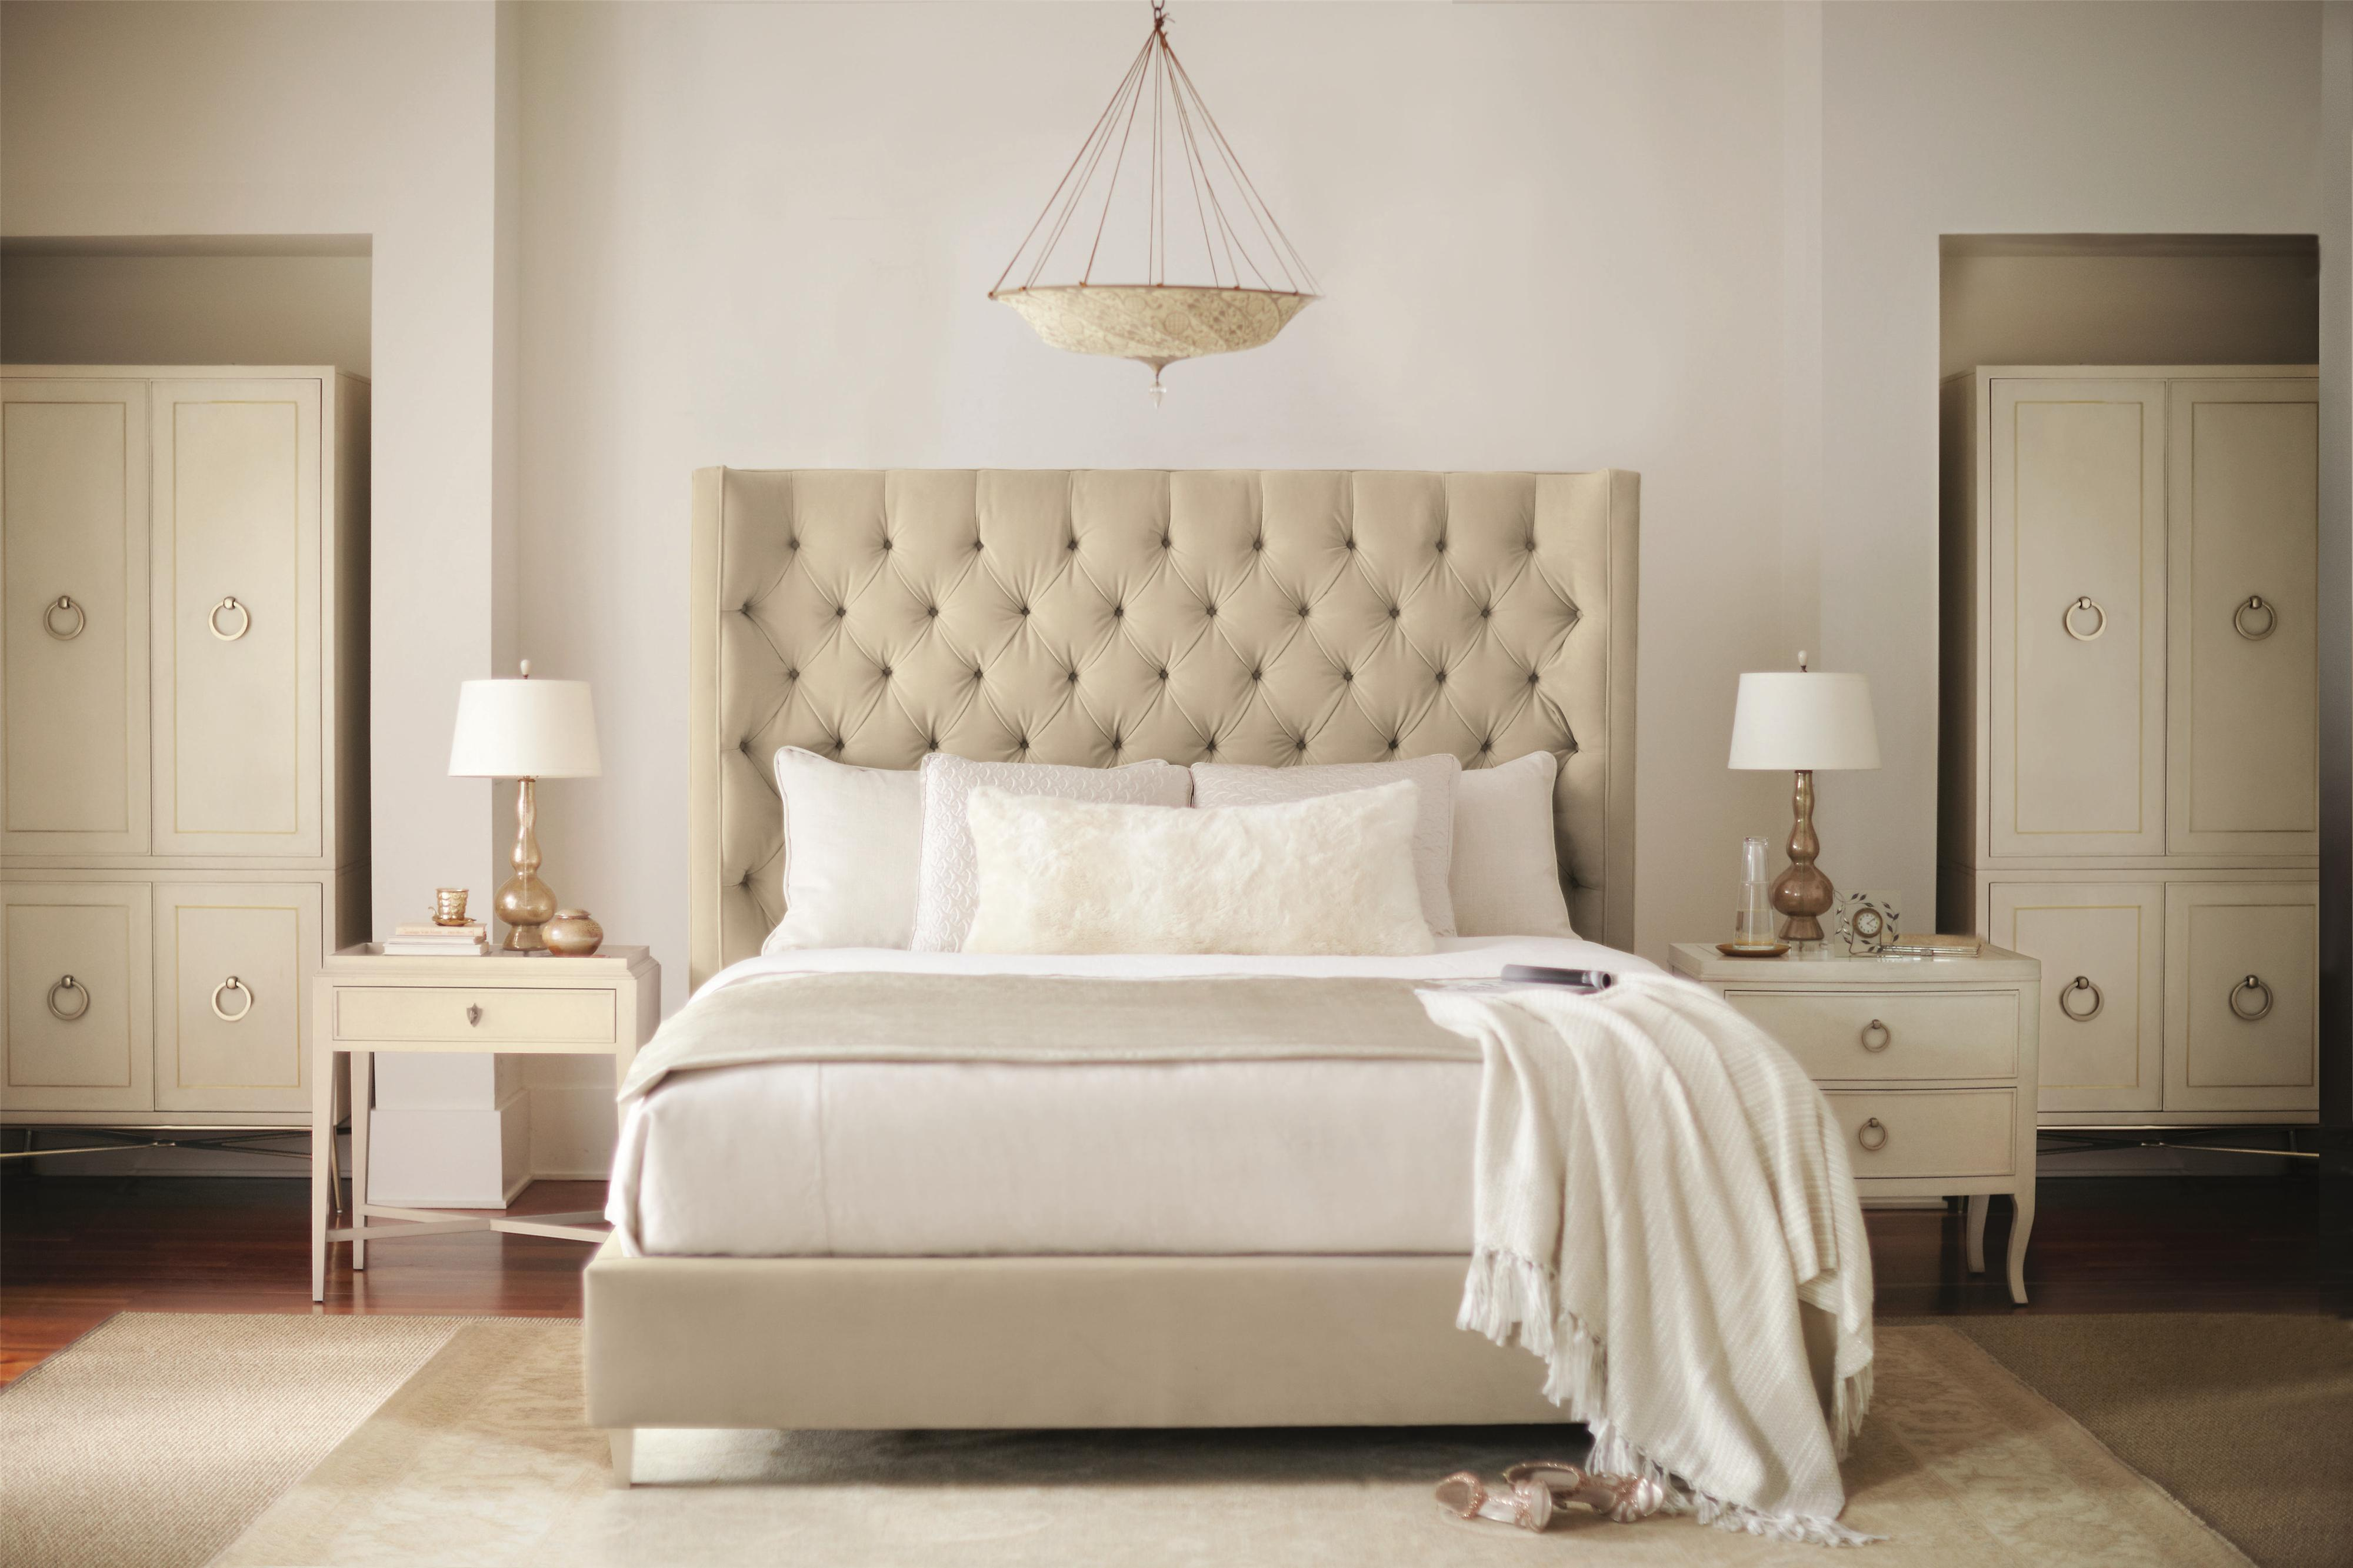 Bernhardt Salon King Upholstered Panel Bed with Diamond Tufting ...